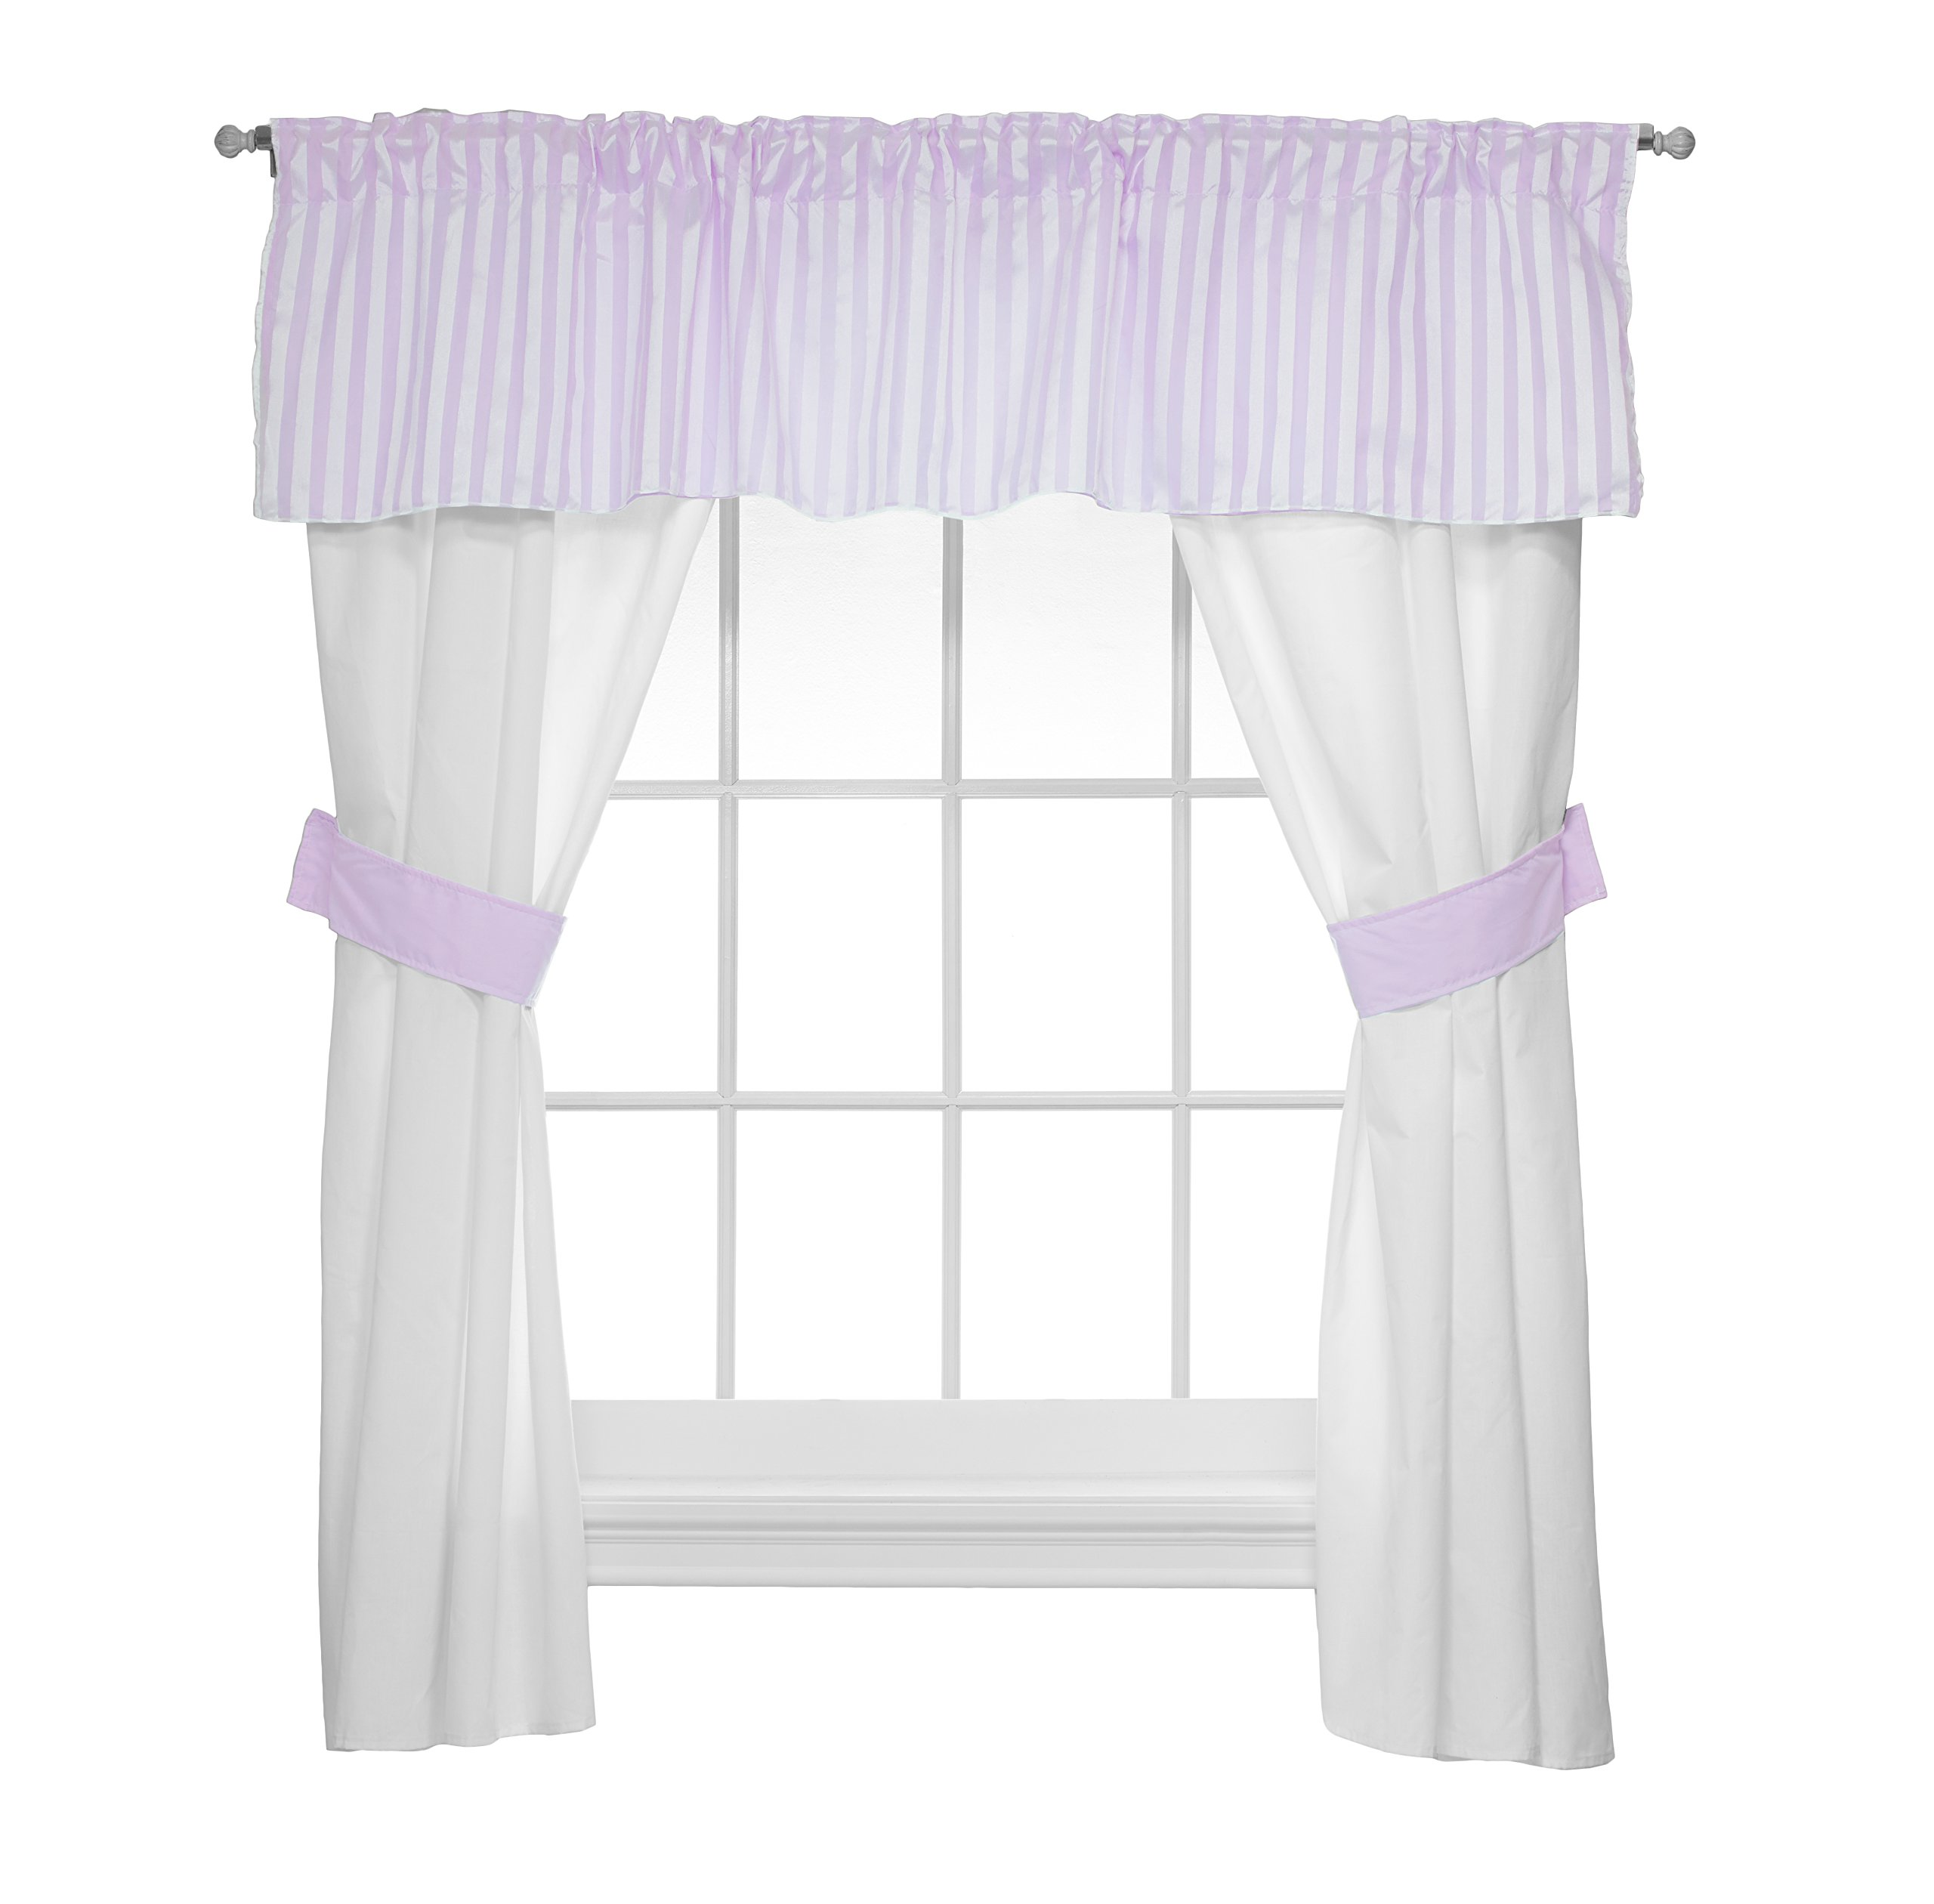 Baby Doll Candyland 5 Piece Window Valance and Curtain Set, Lavender by Baby Doll